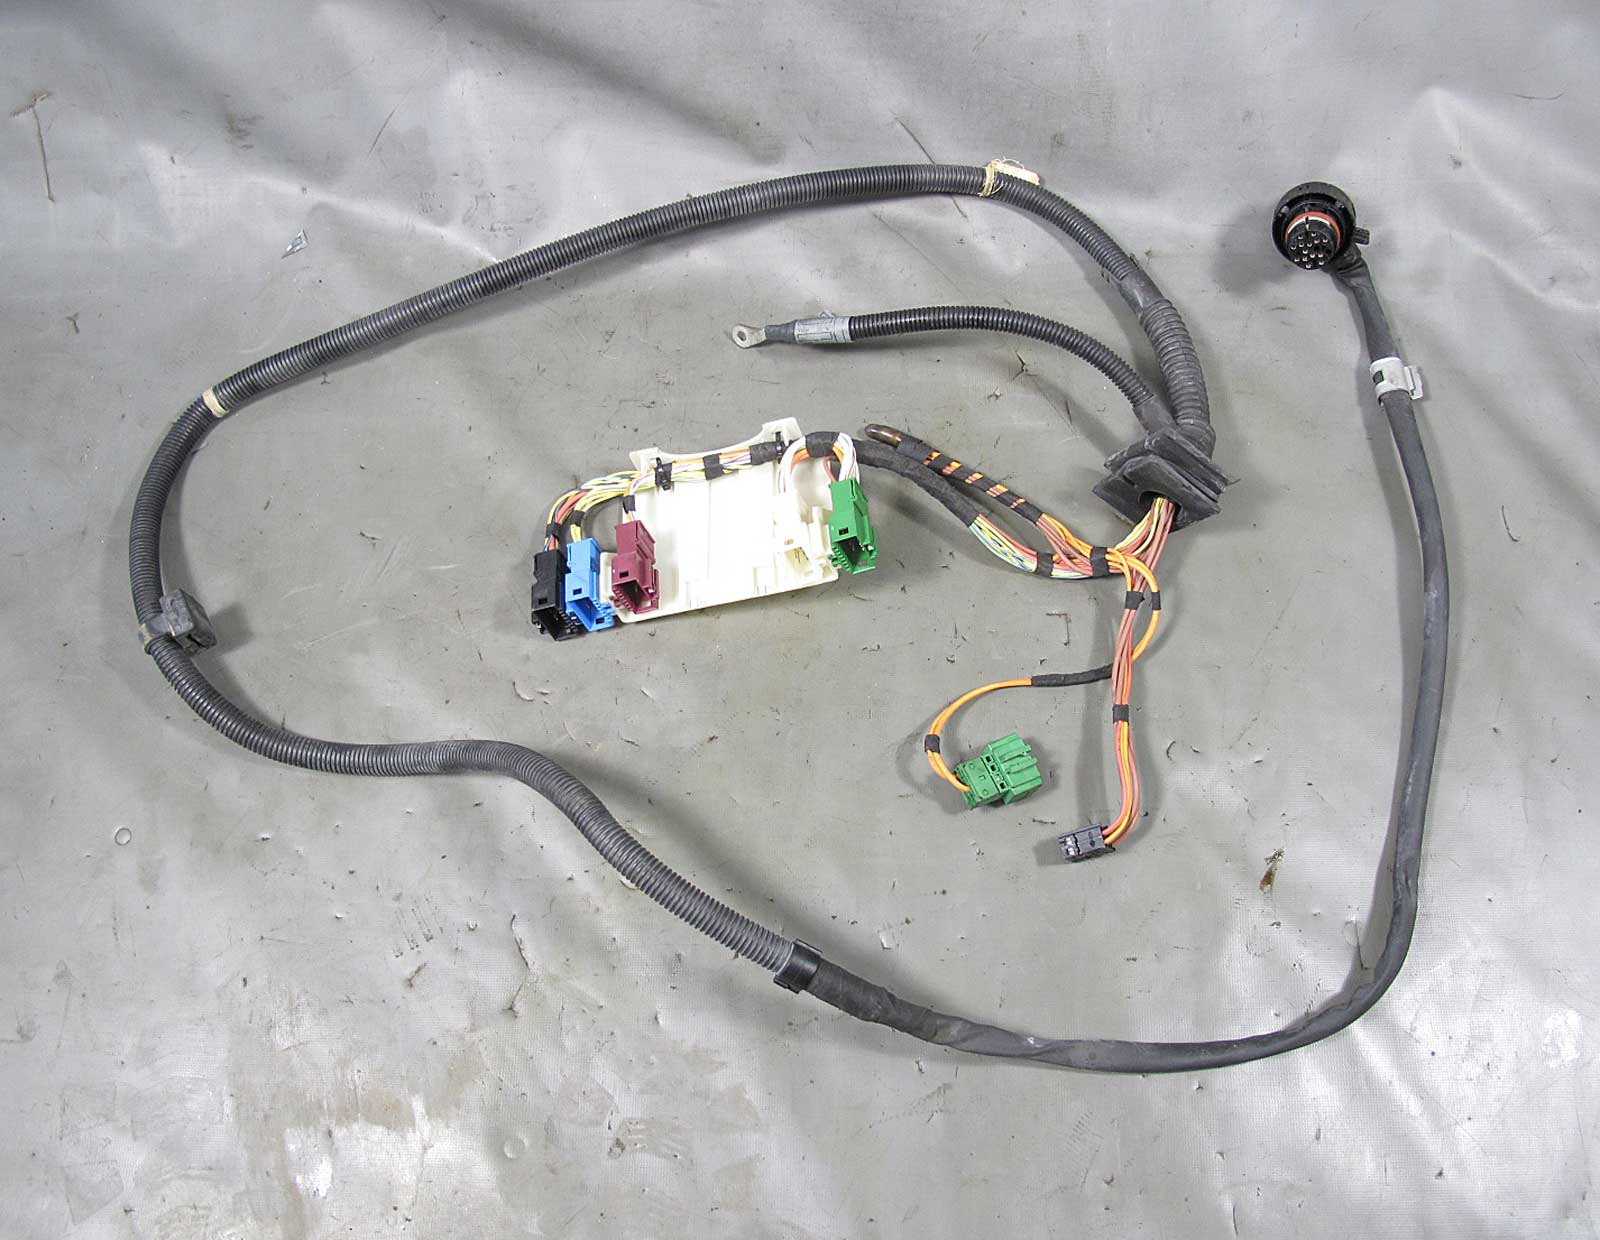 transmission wiring harness replacement cost wiring solutions rh rausco com bmw wiring harness replacement cost GM Wiring Harness Replacement